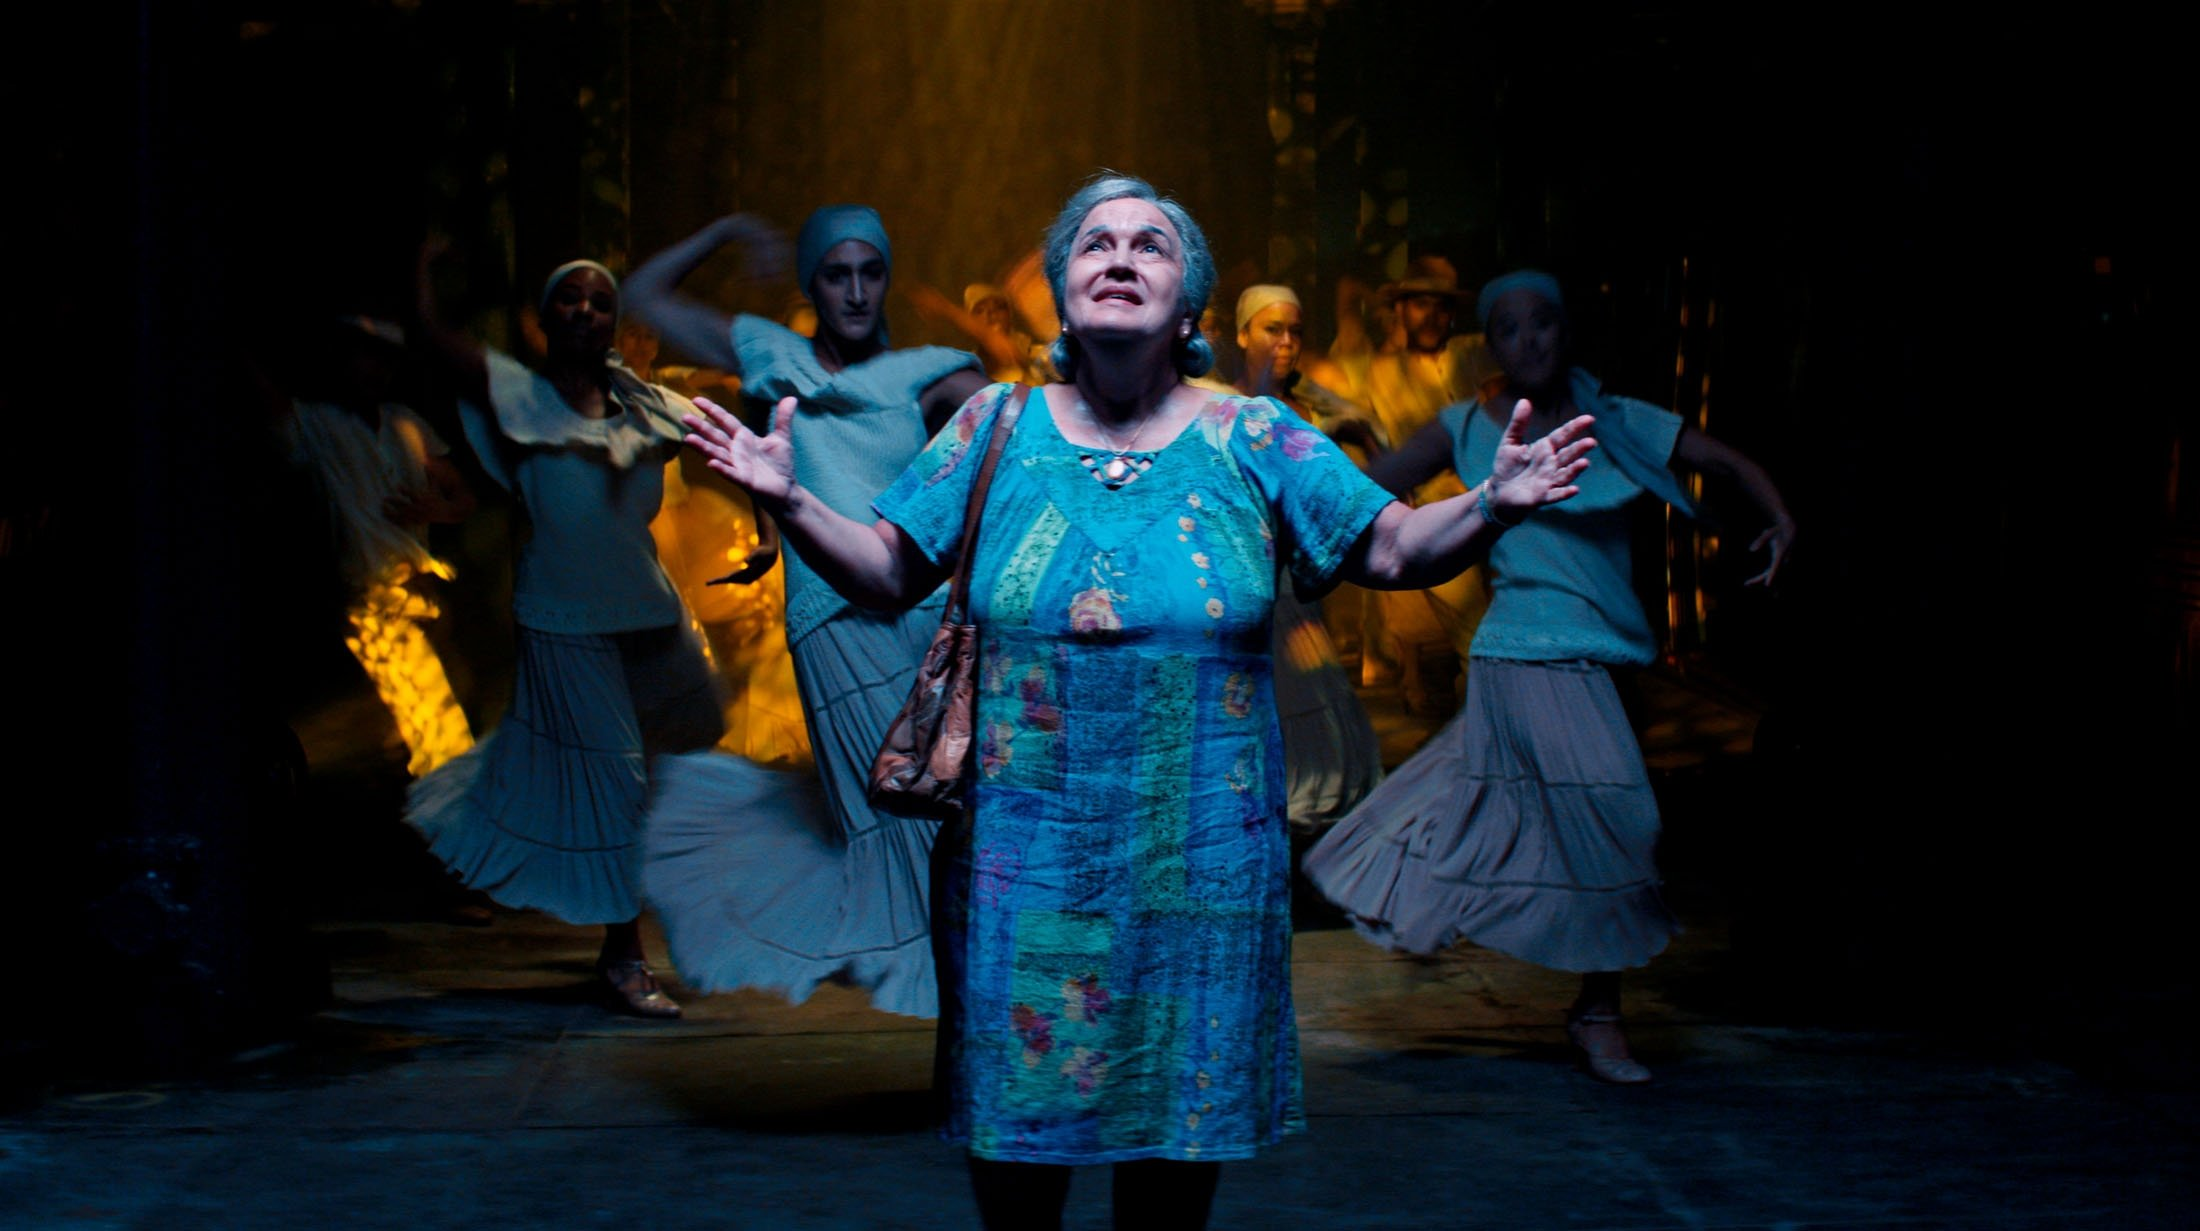 Actress Olga Merediz (C) opens her arms in a scene from the musical film 'In the Heights.' (Warner Bros. via AP)